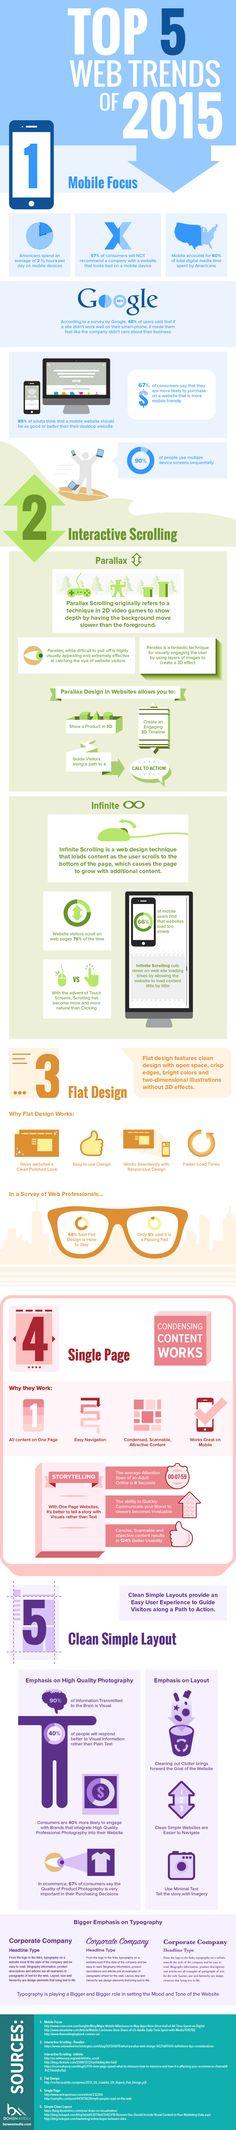 http://crosswebideas.com/idea-75, #design #WebDesign #Trends. Is your site lagging behind web design trends? (infographic)